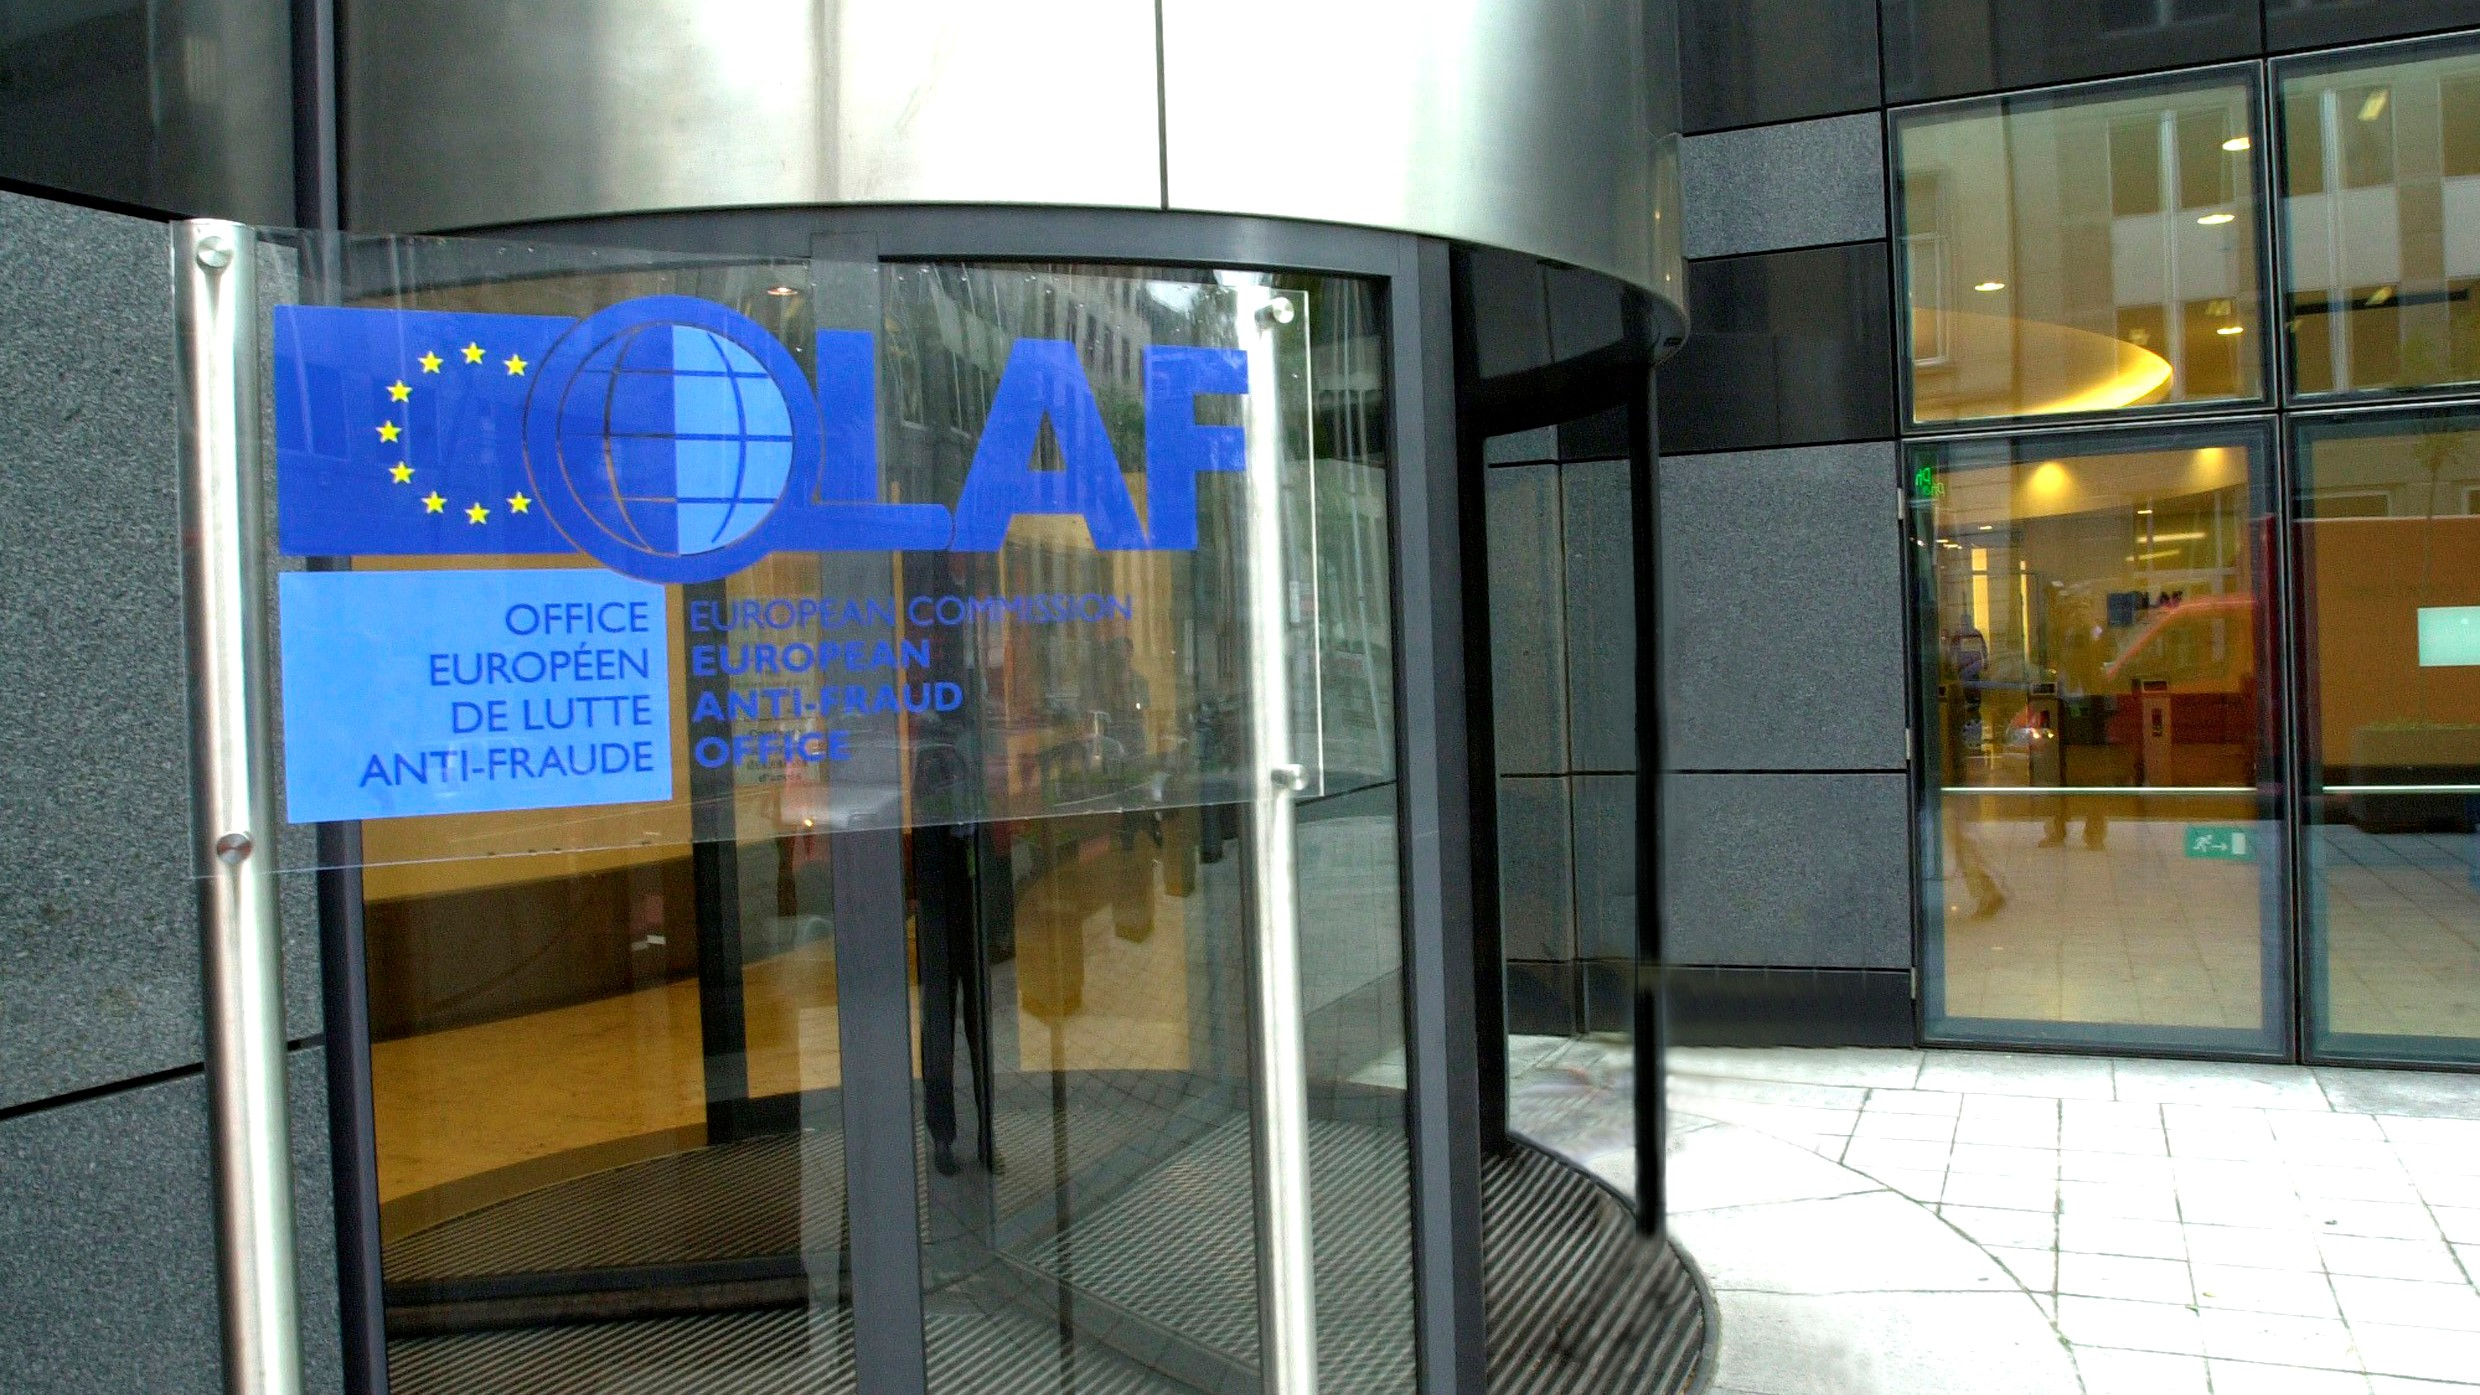 European Anti-Fraud Office (OLAF) (EC/AV)